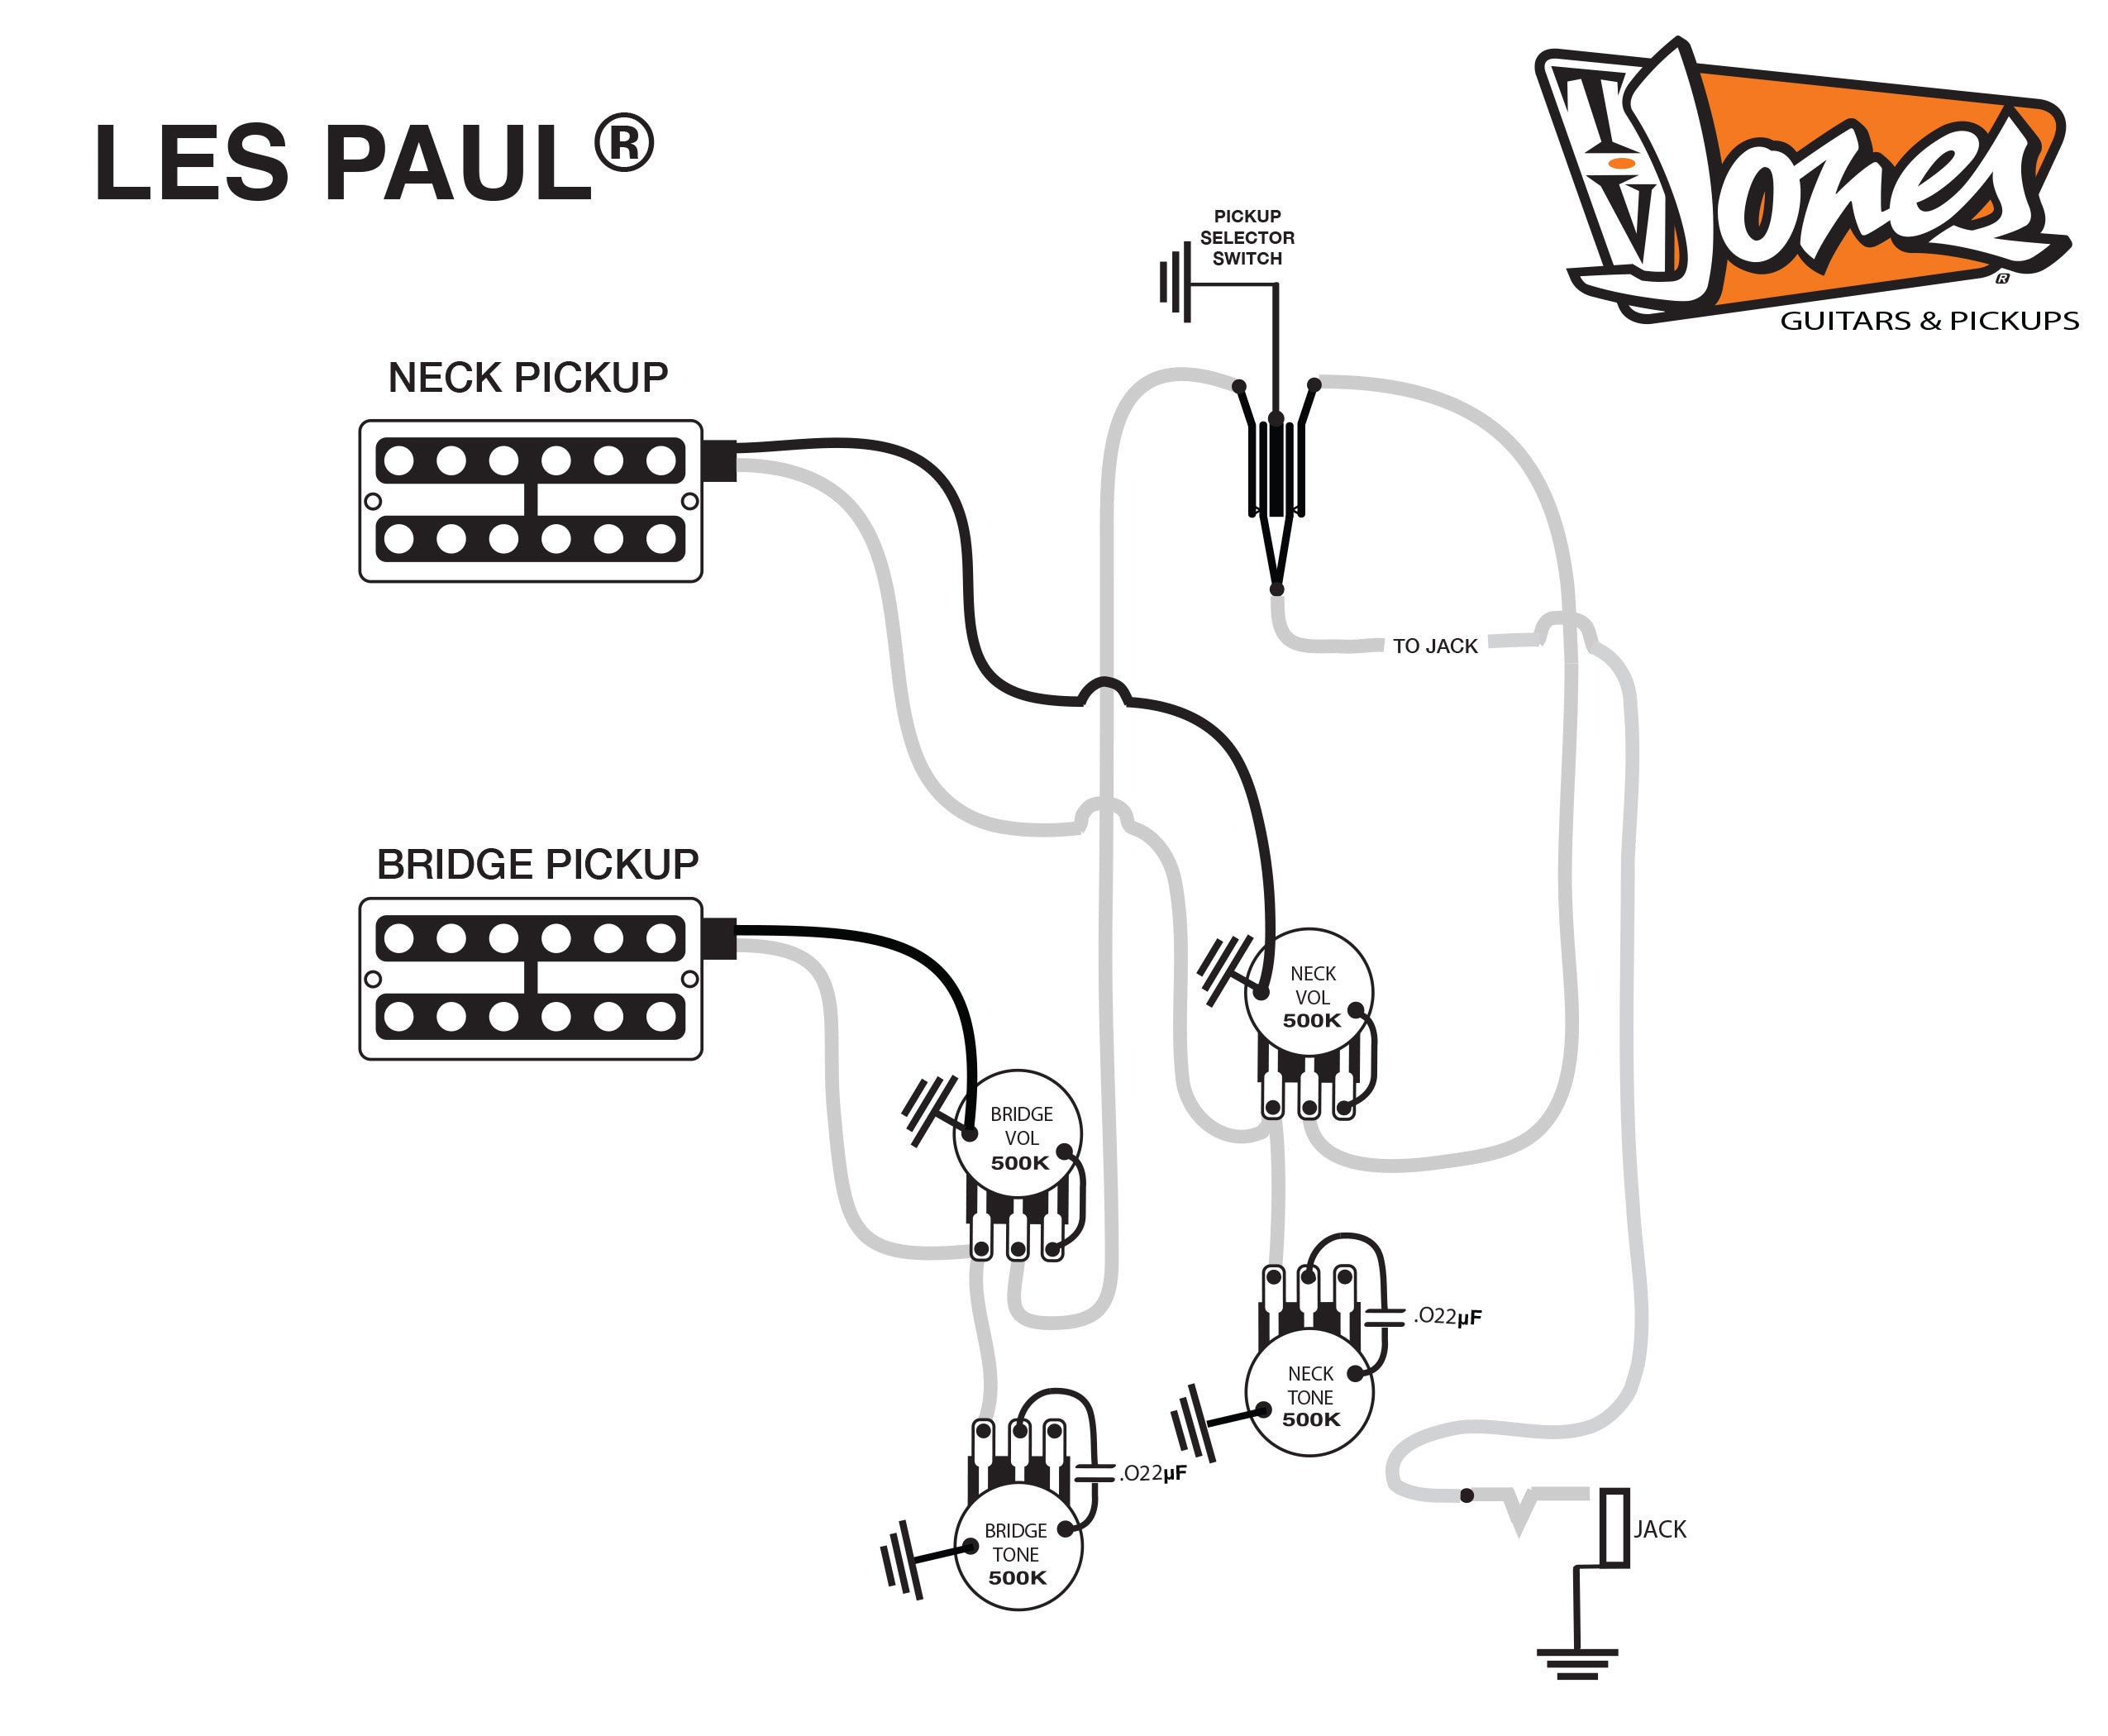 Tv Jones Product Dimensions Volume 1 Tone Pickup Wiring Diagram Gibson Guitar Schematics